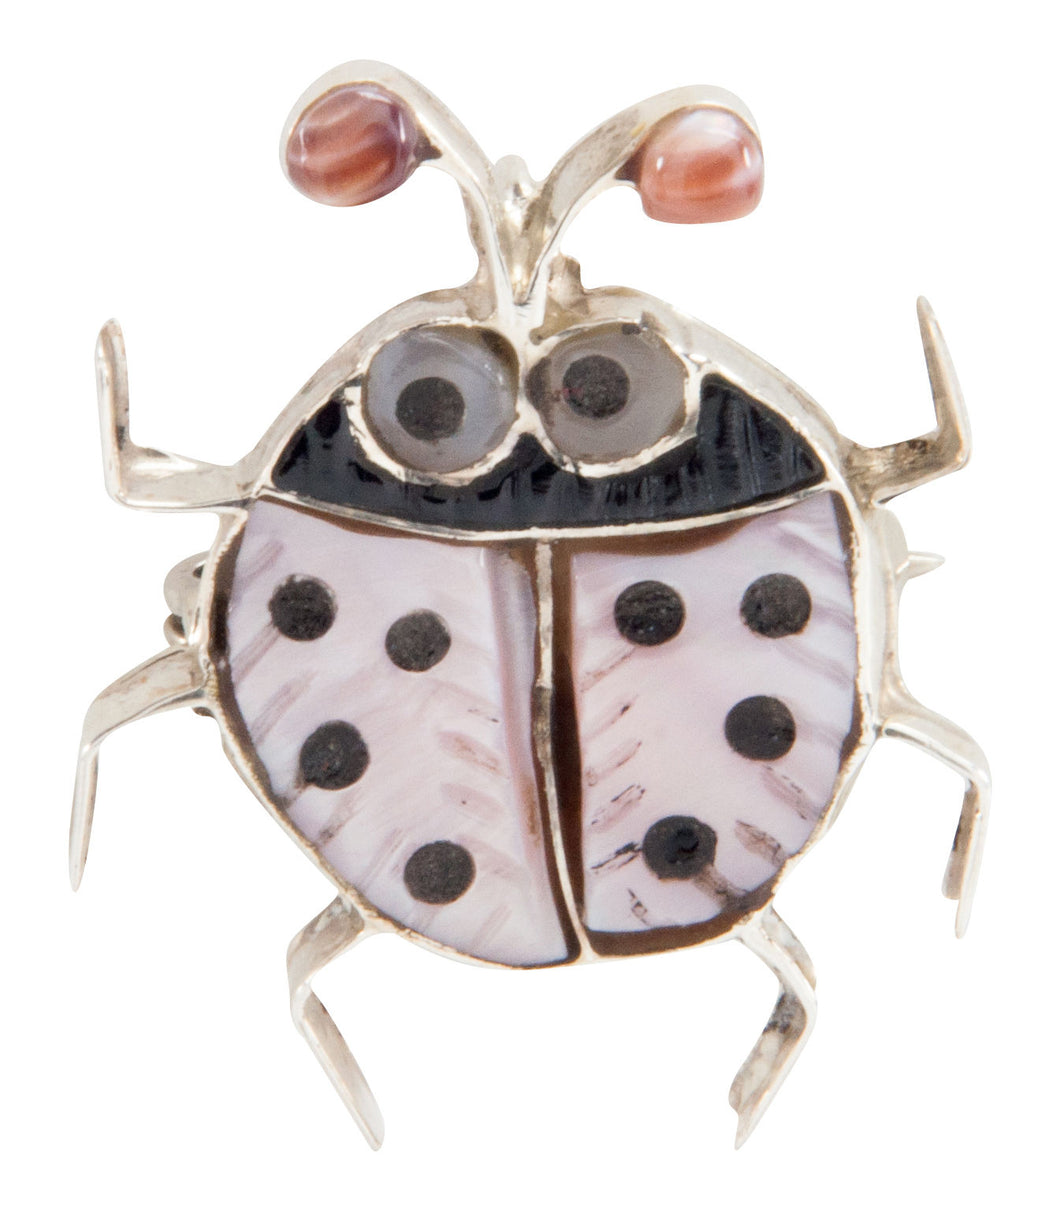 Zuni Native American Pink Shell Ladybug Pin Pendant by Shirley SKU225339